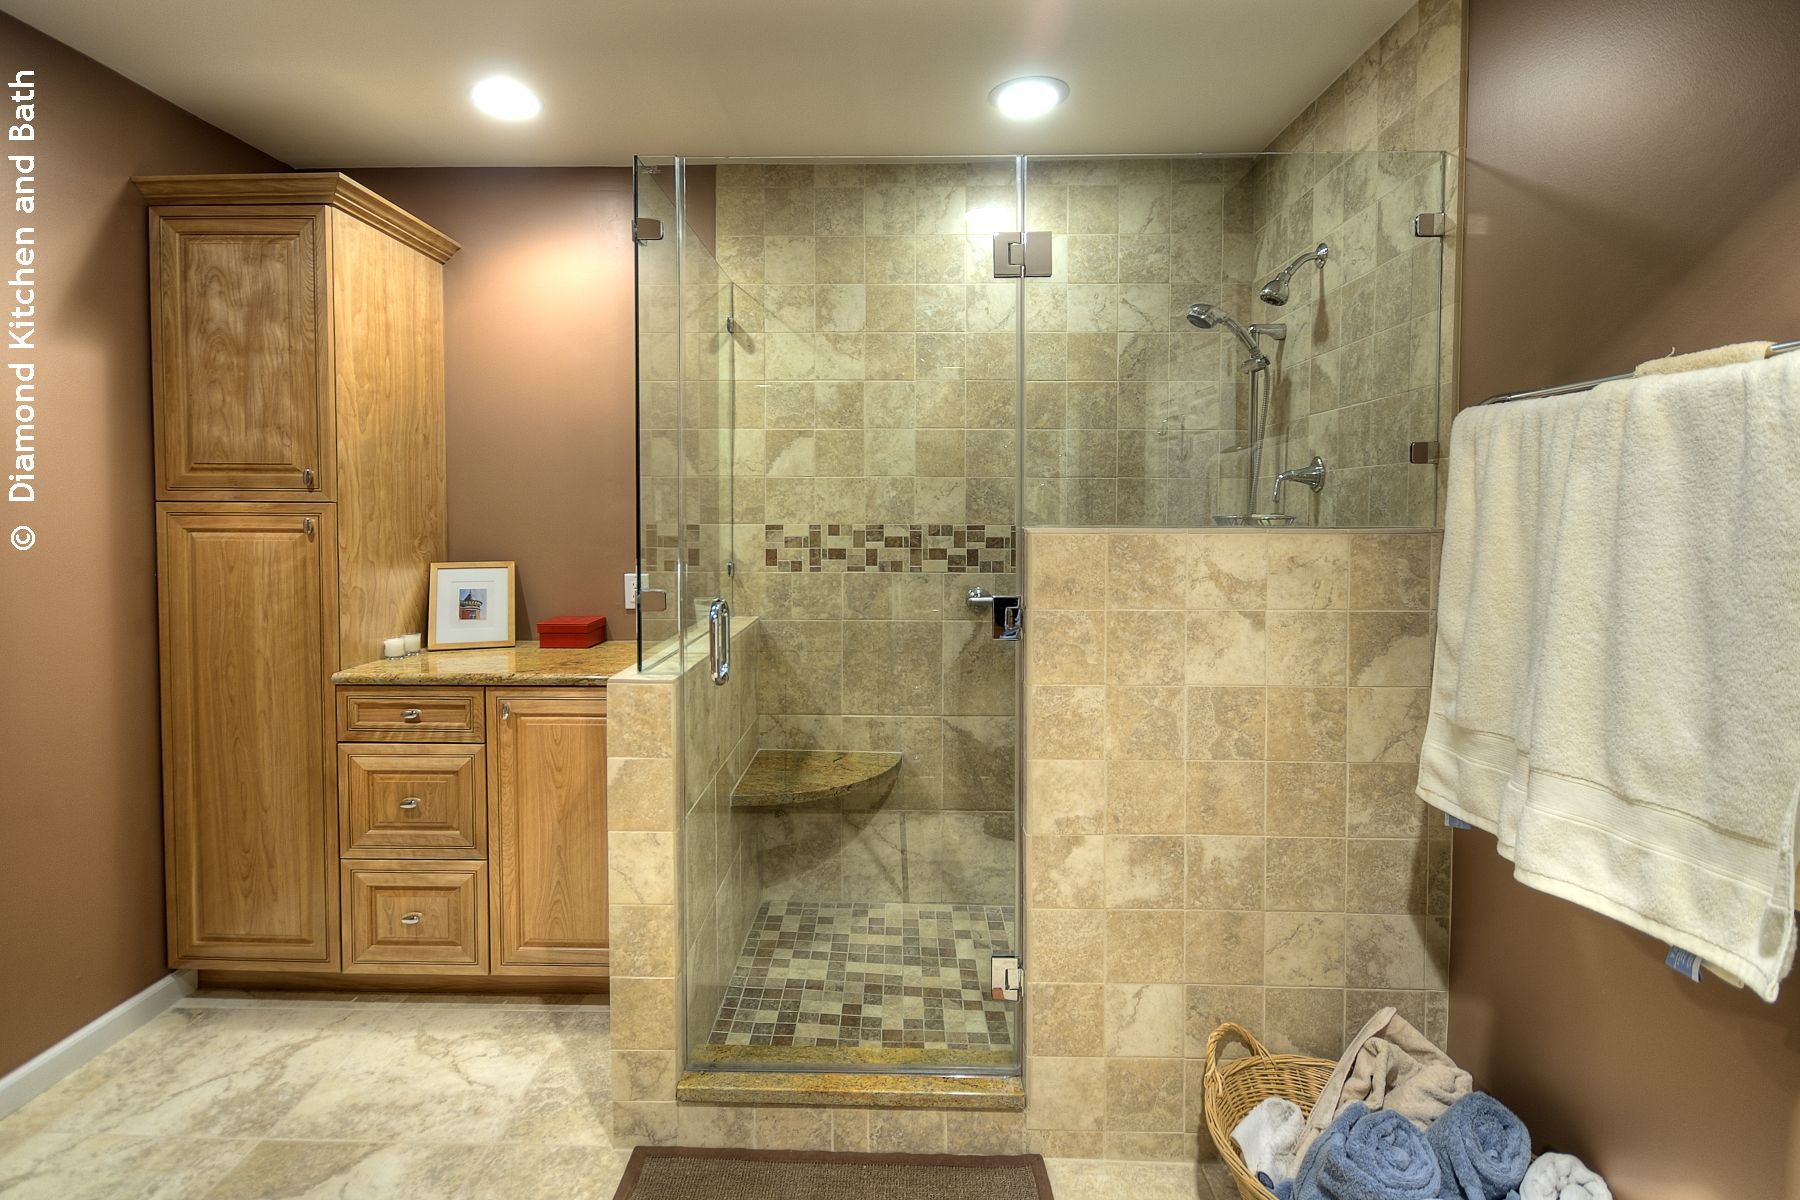 Bathroom Remodeling Virtual Tour in New Hope, PA